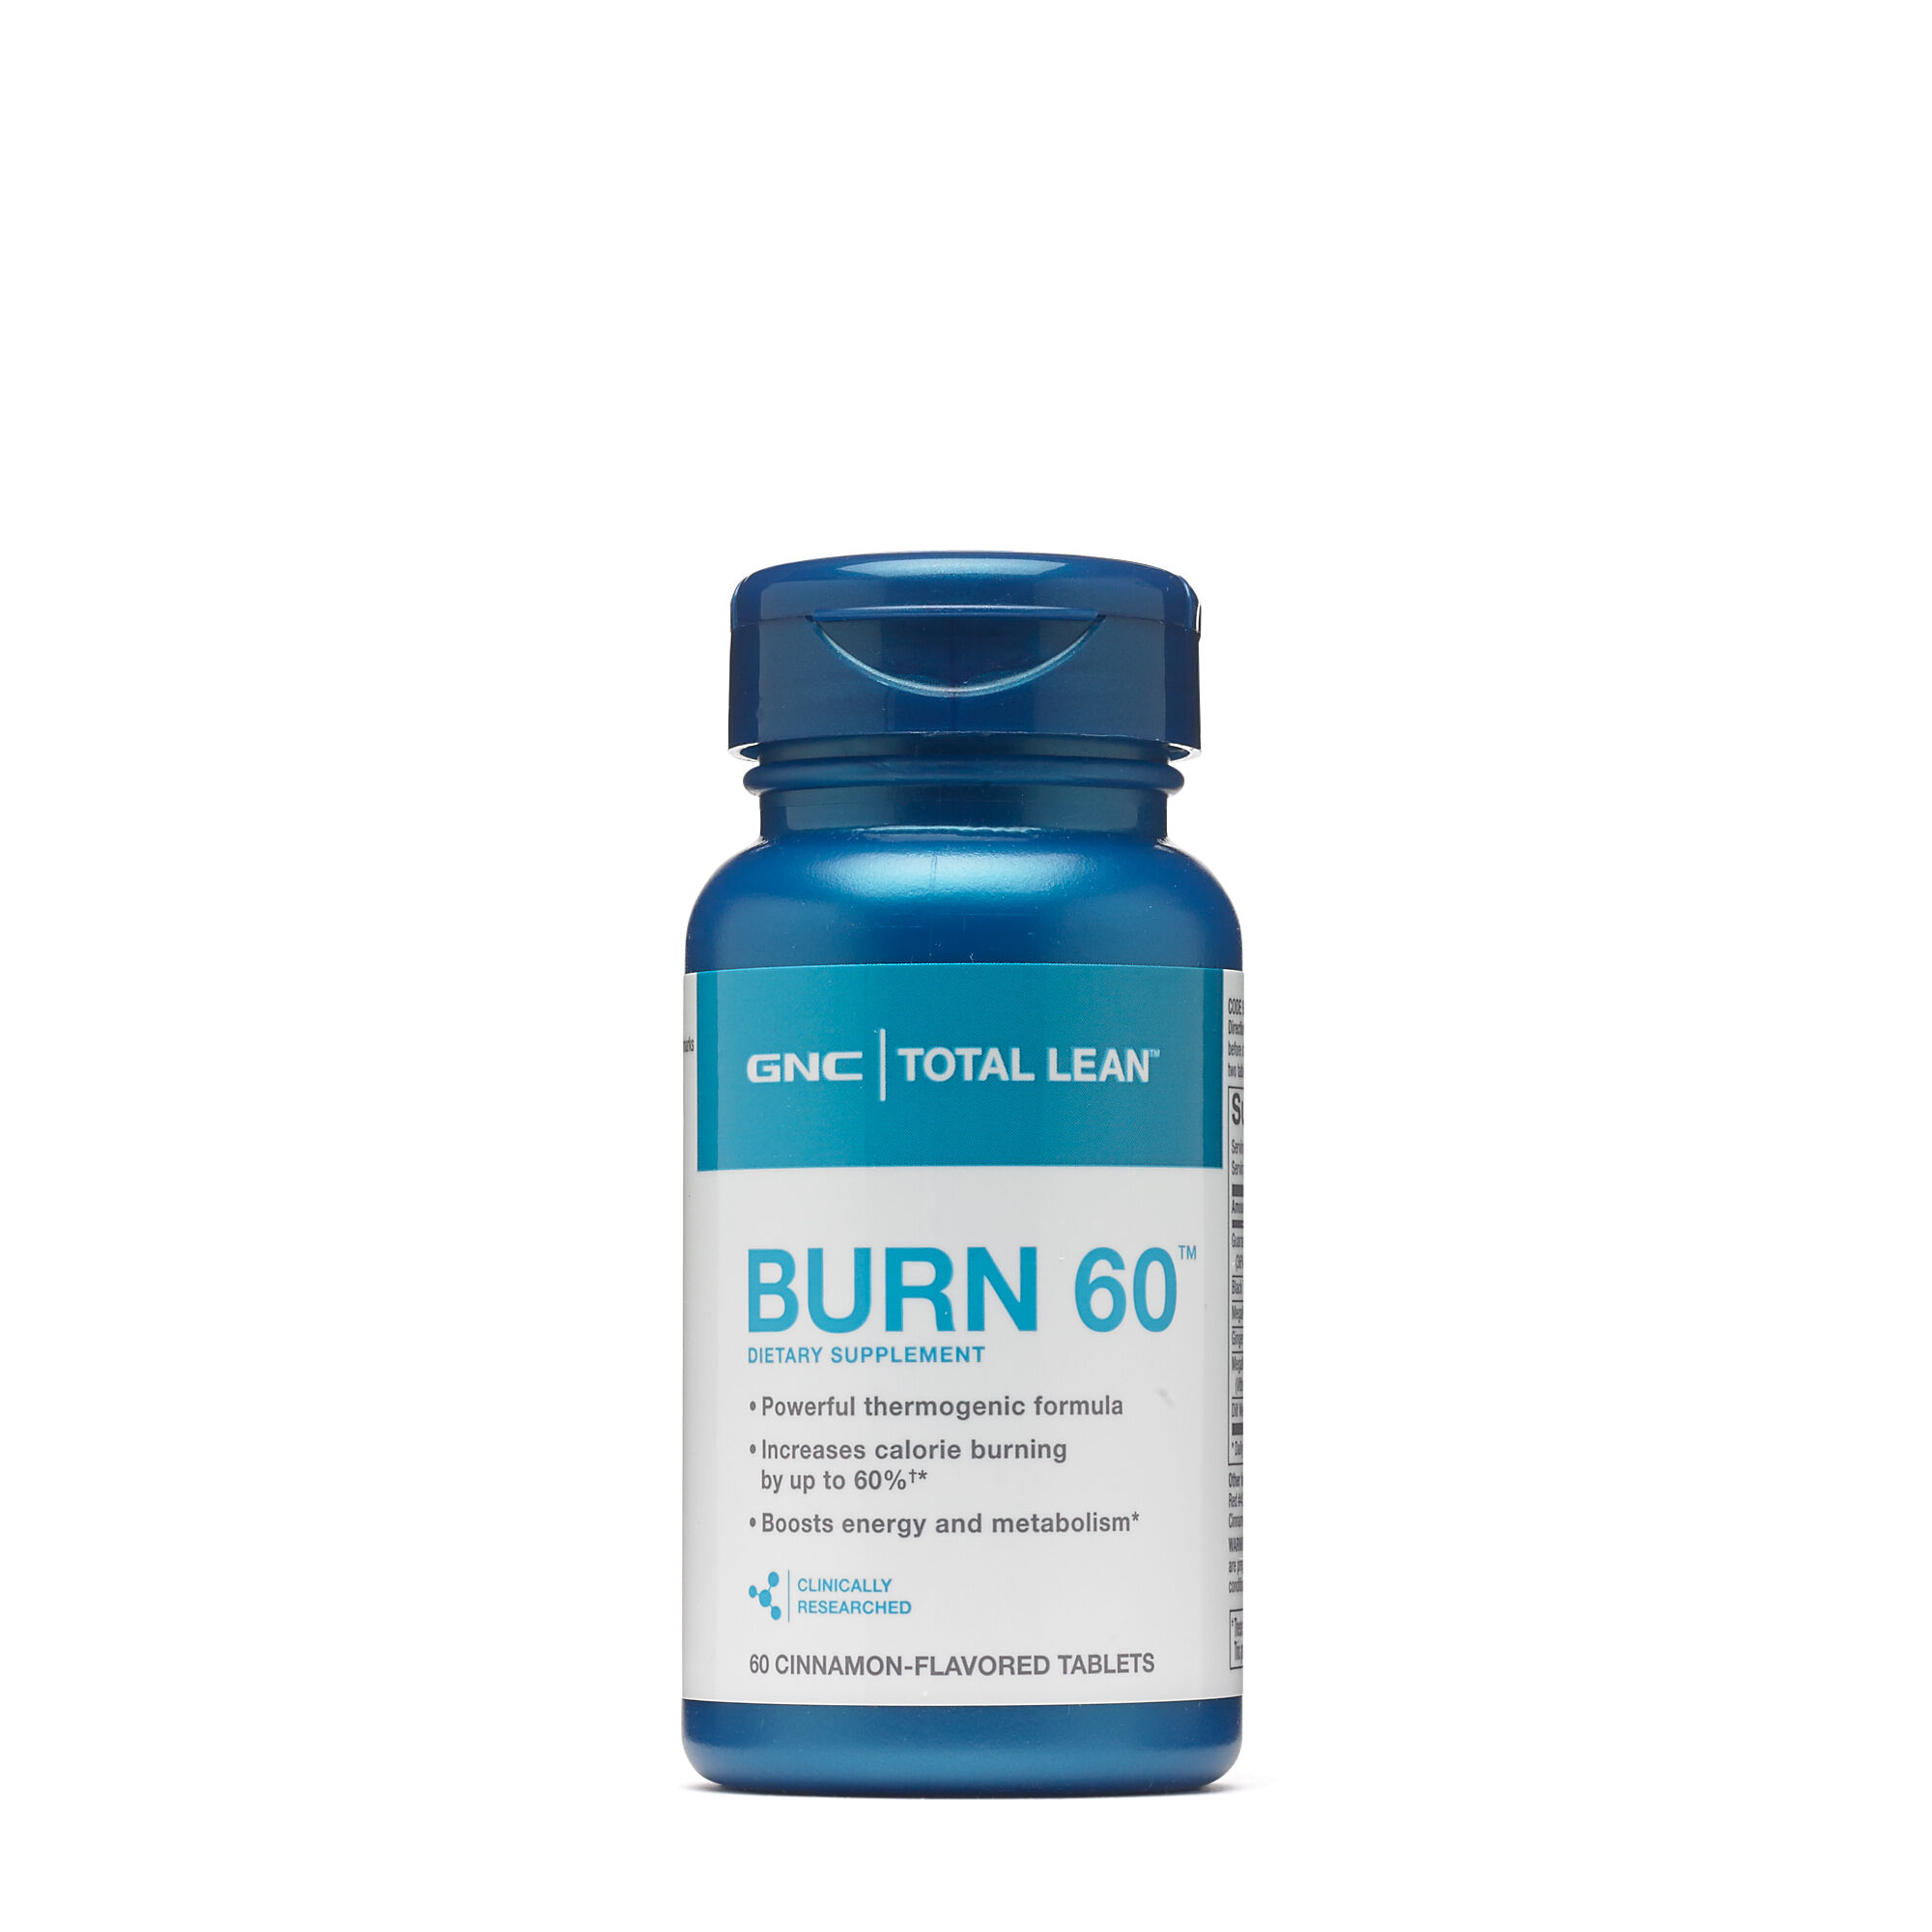 BOGO 50% off GNC Total Lean Burn 60 - Cinnamon Flavored